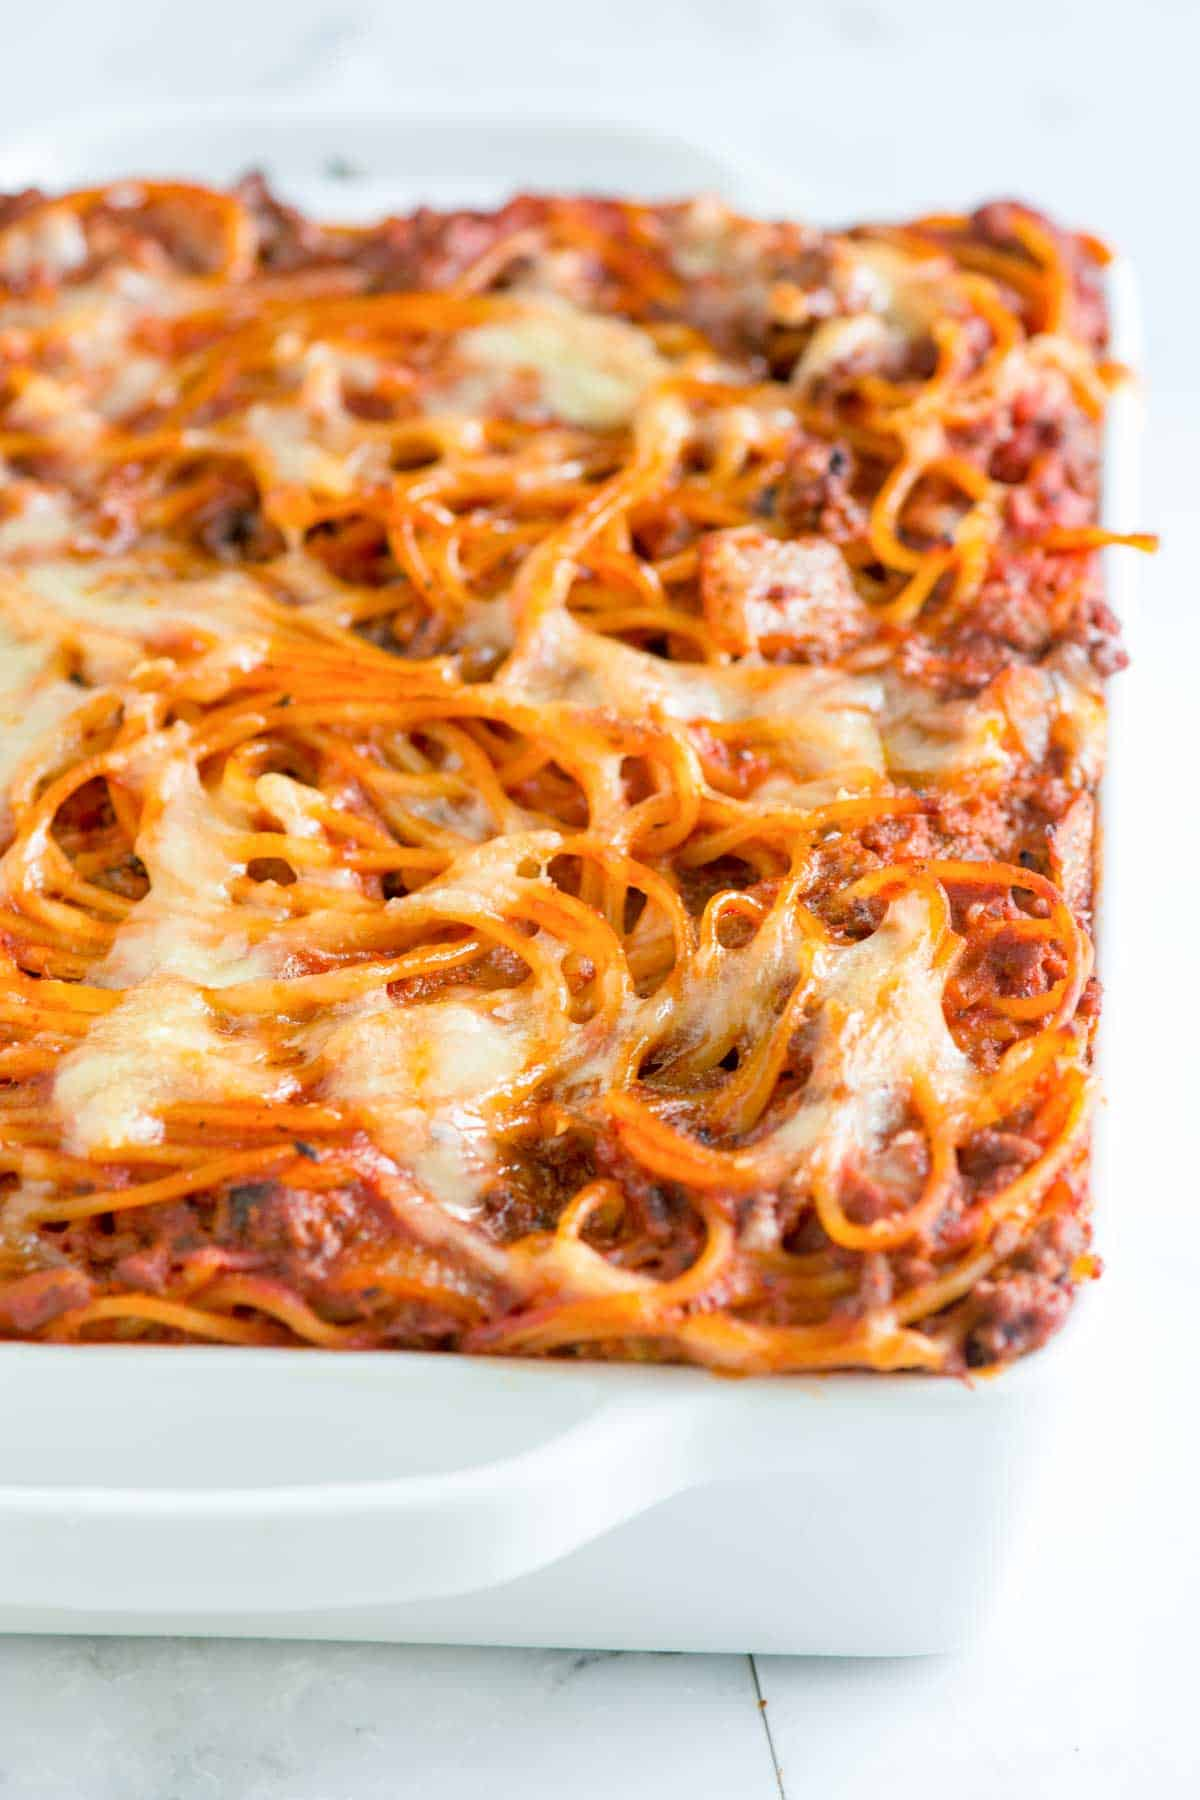 How to Make the Best Baked Pasta